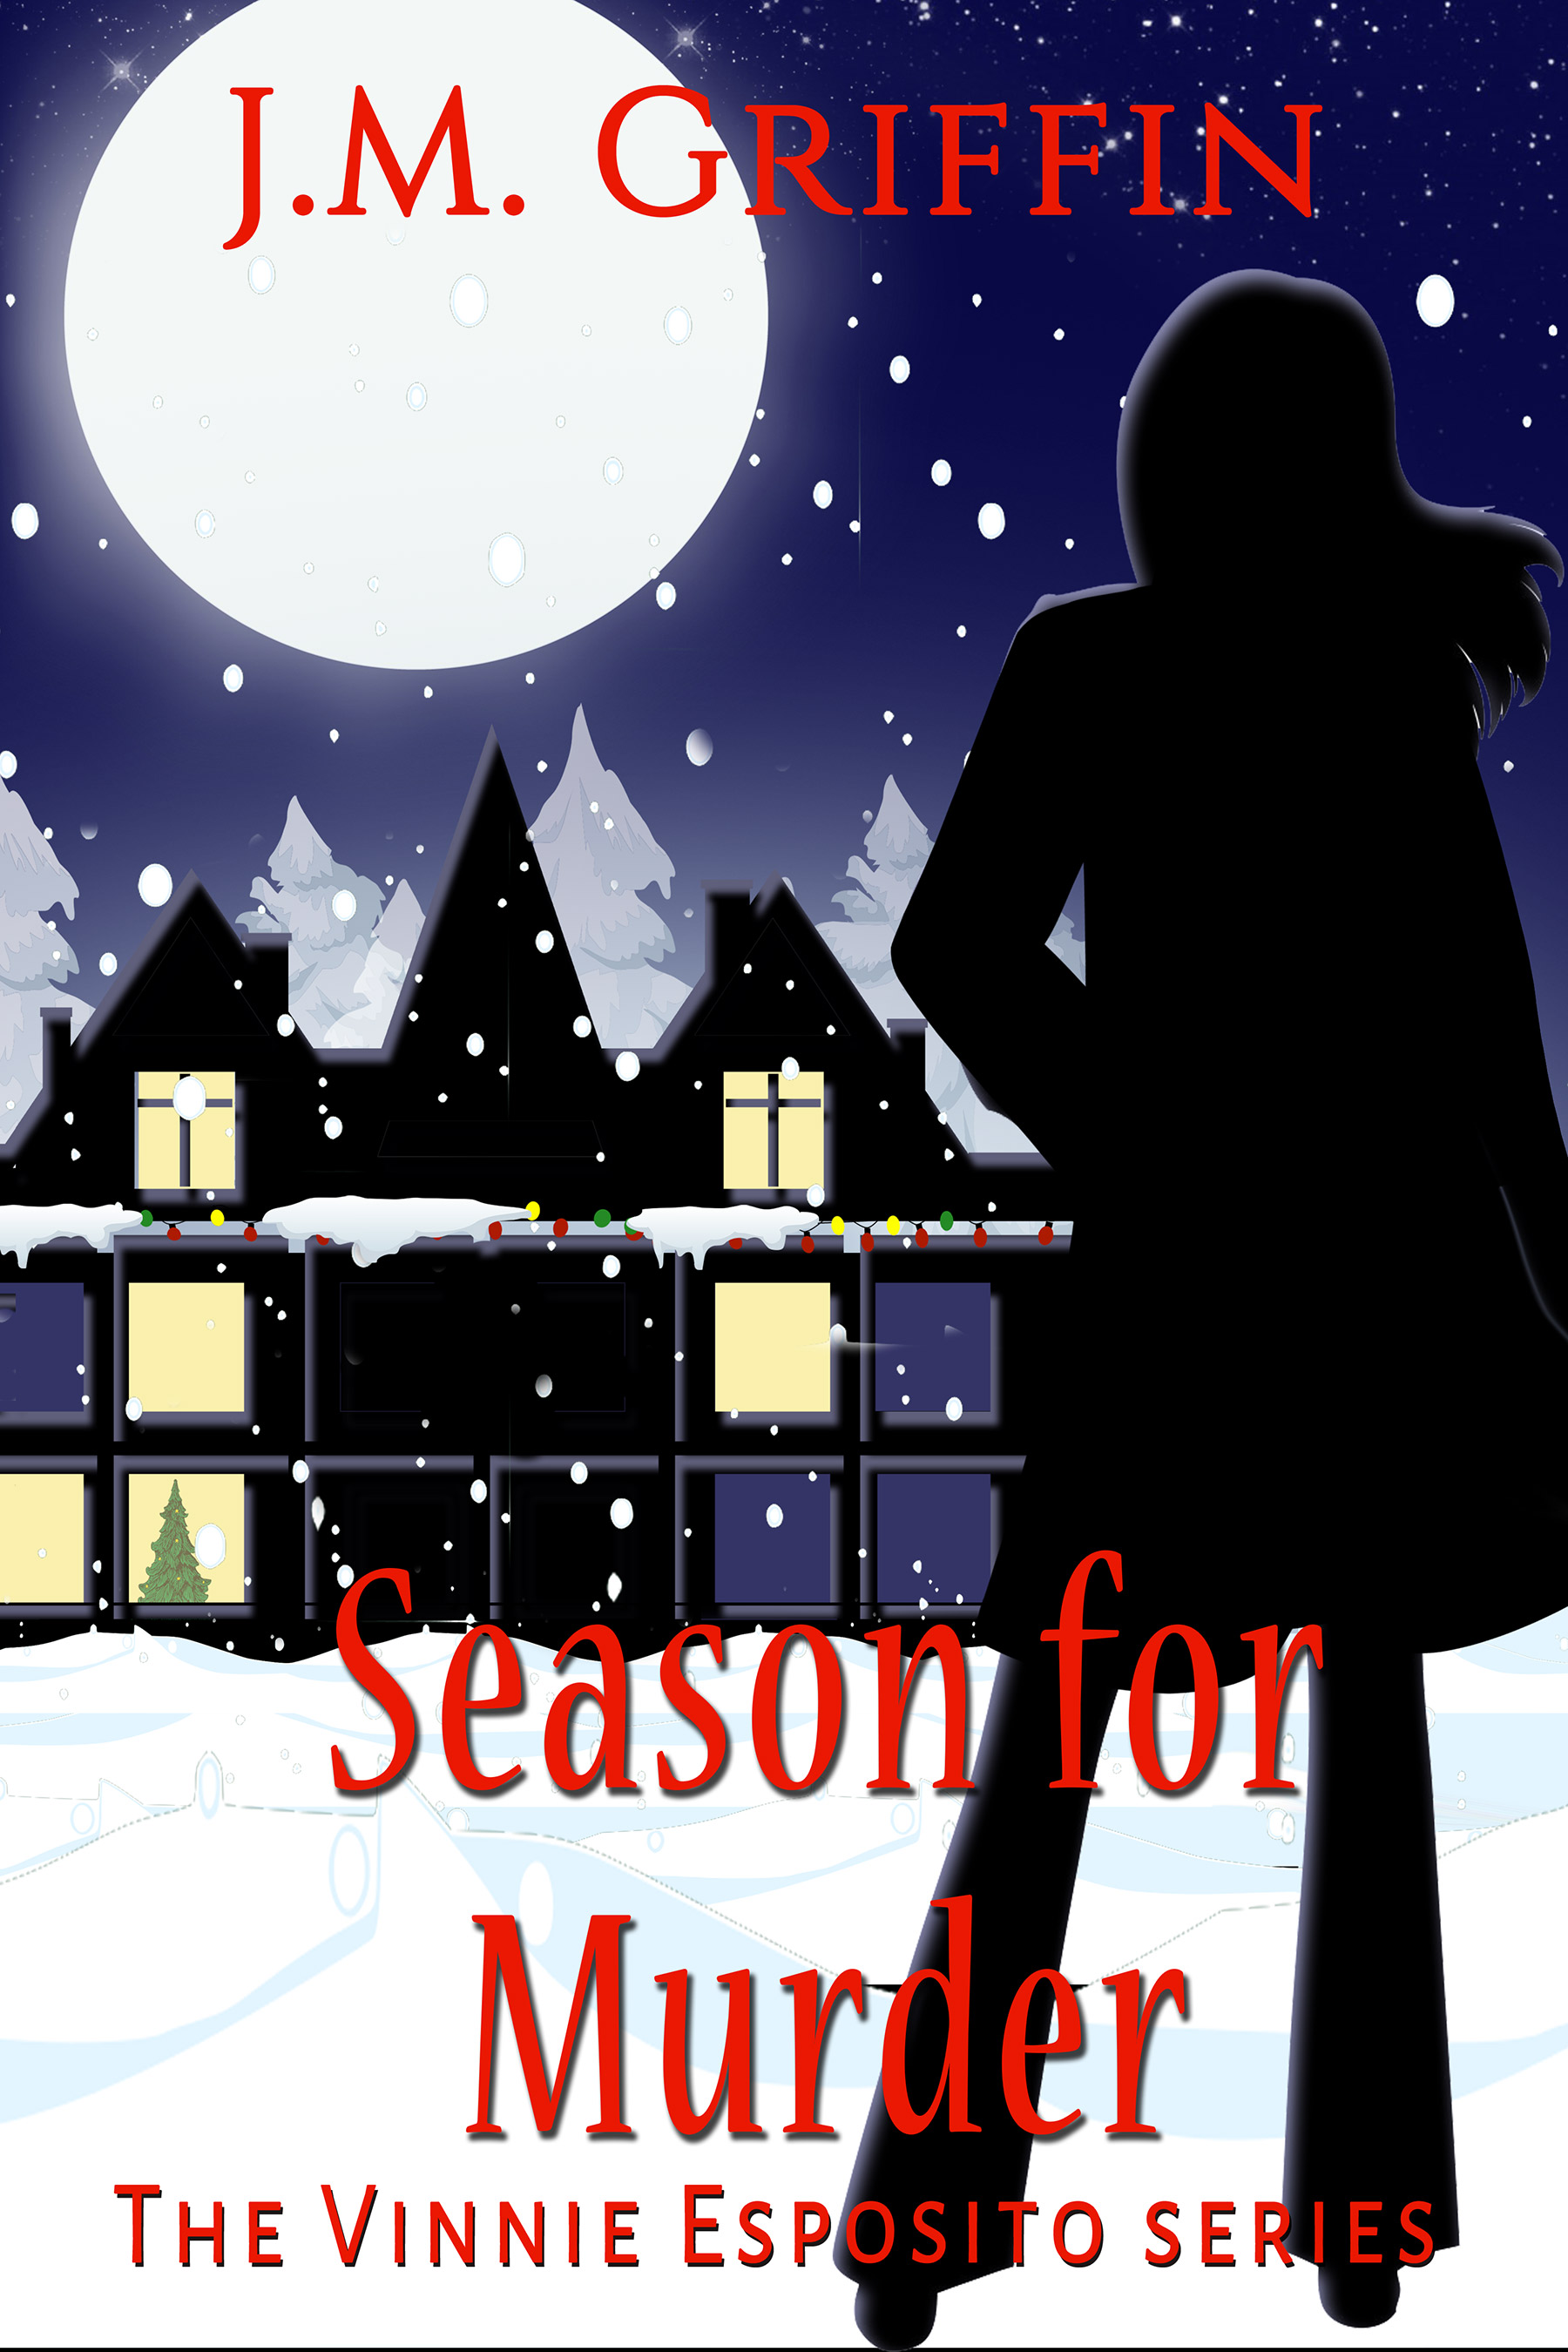 JMG-SeasonforMurder-VES-5-Ebook